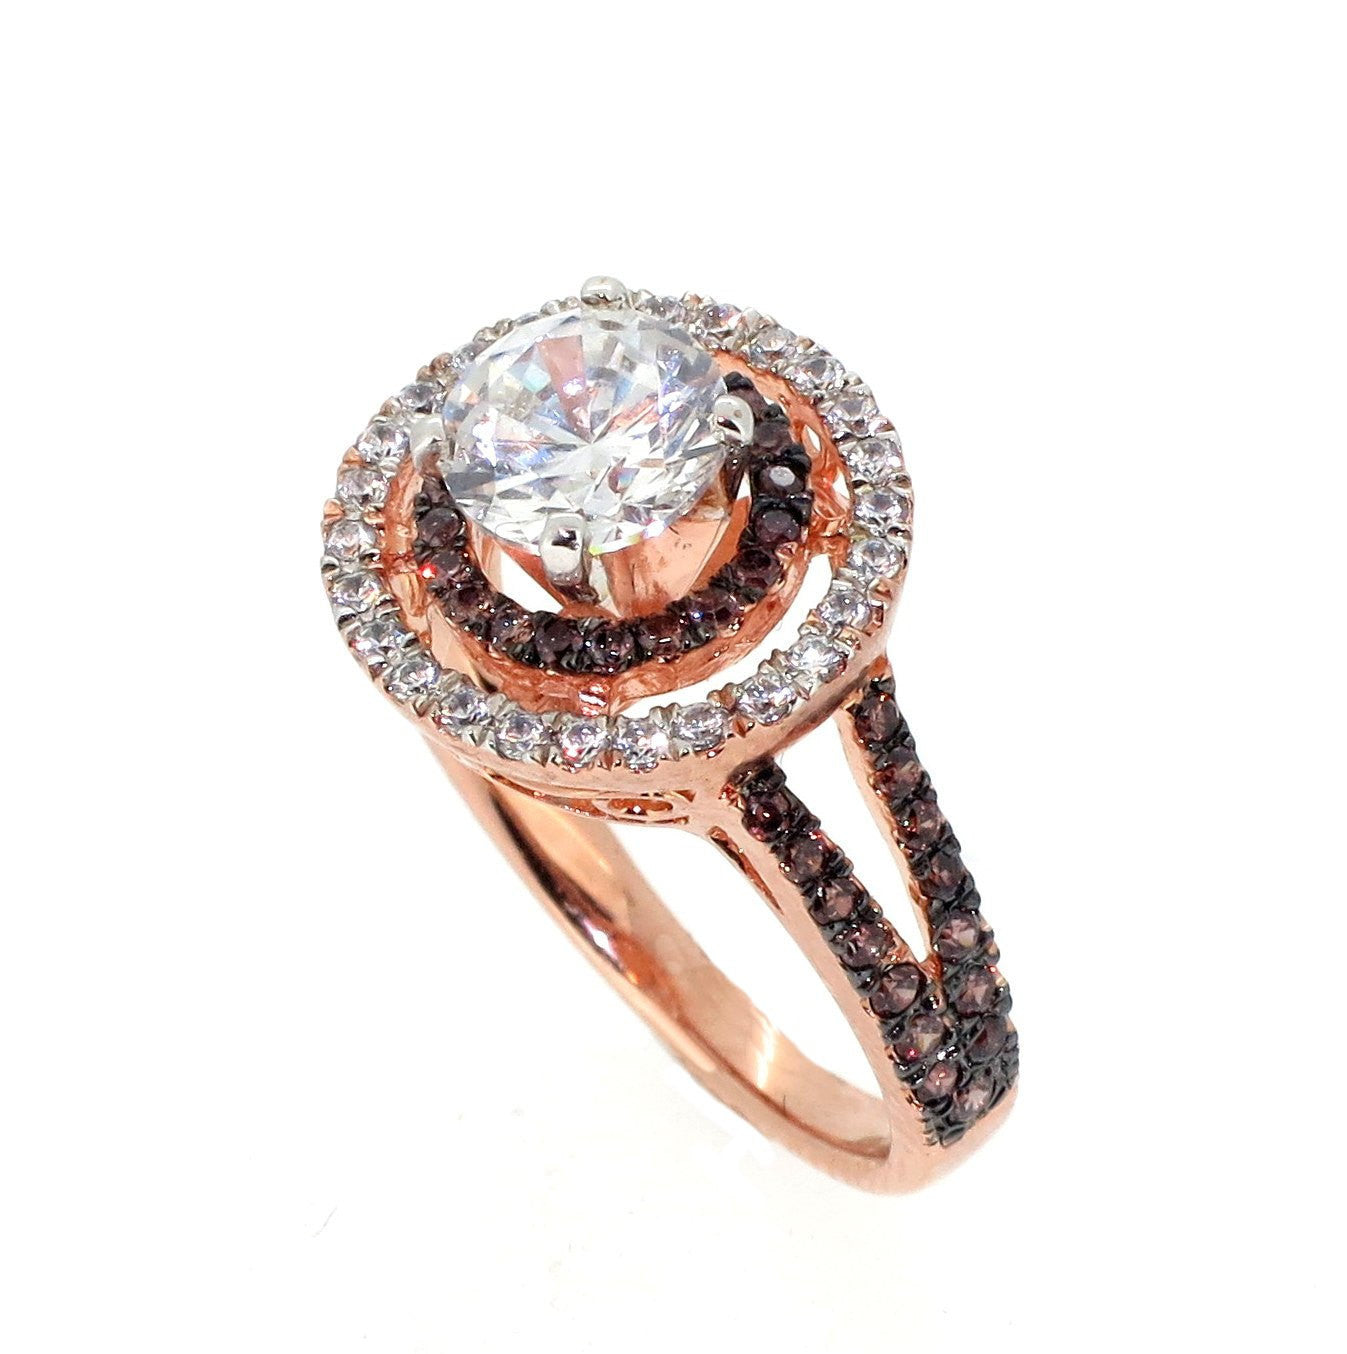 Floating Halo Rose Gold, White & Chocolate Color Brown Diamonds, 1 Carat Forever Brilliant Moissanite Engagement Ring, Anniversary Ring - FB94612